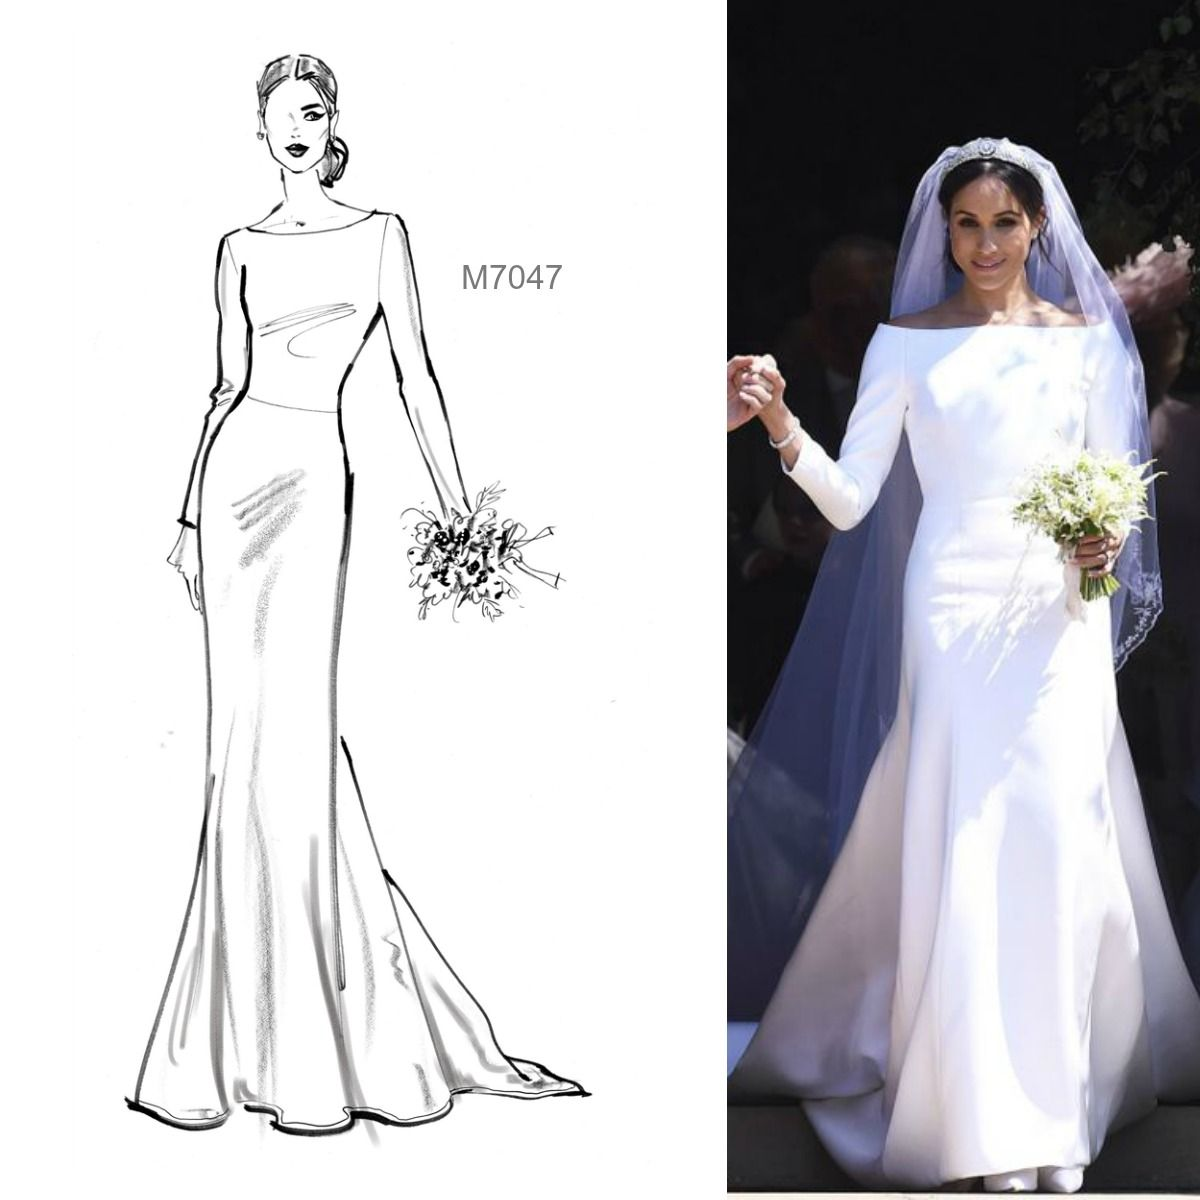 Markle Wedding Dress.Sew The Meghan Markle Wedding Gown Look Tm You Can Quickly Make A